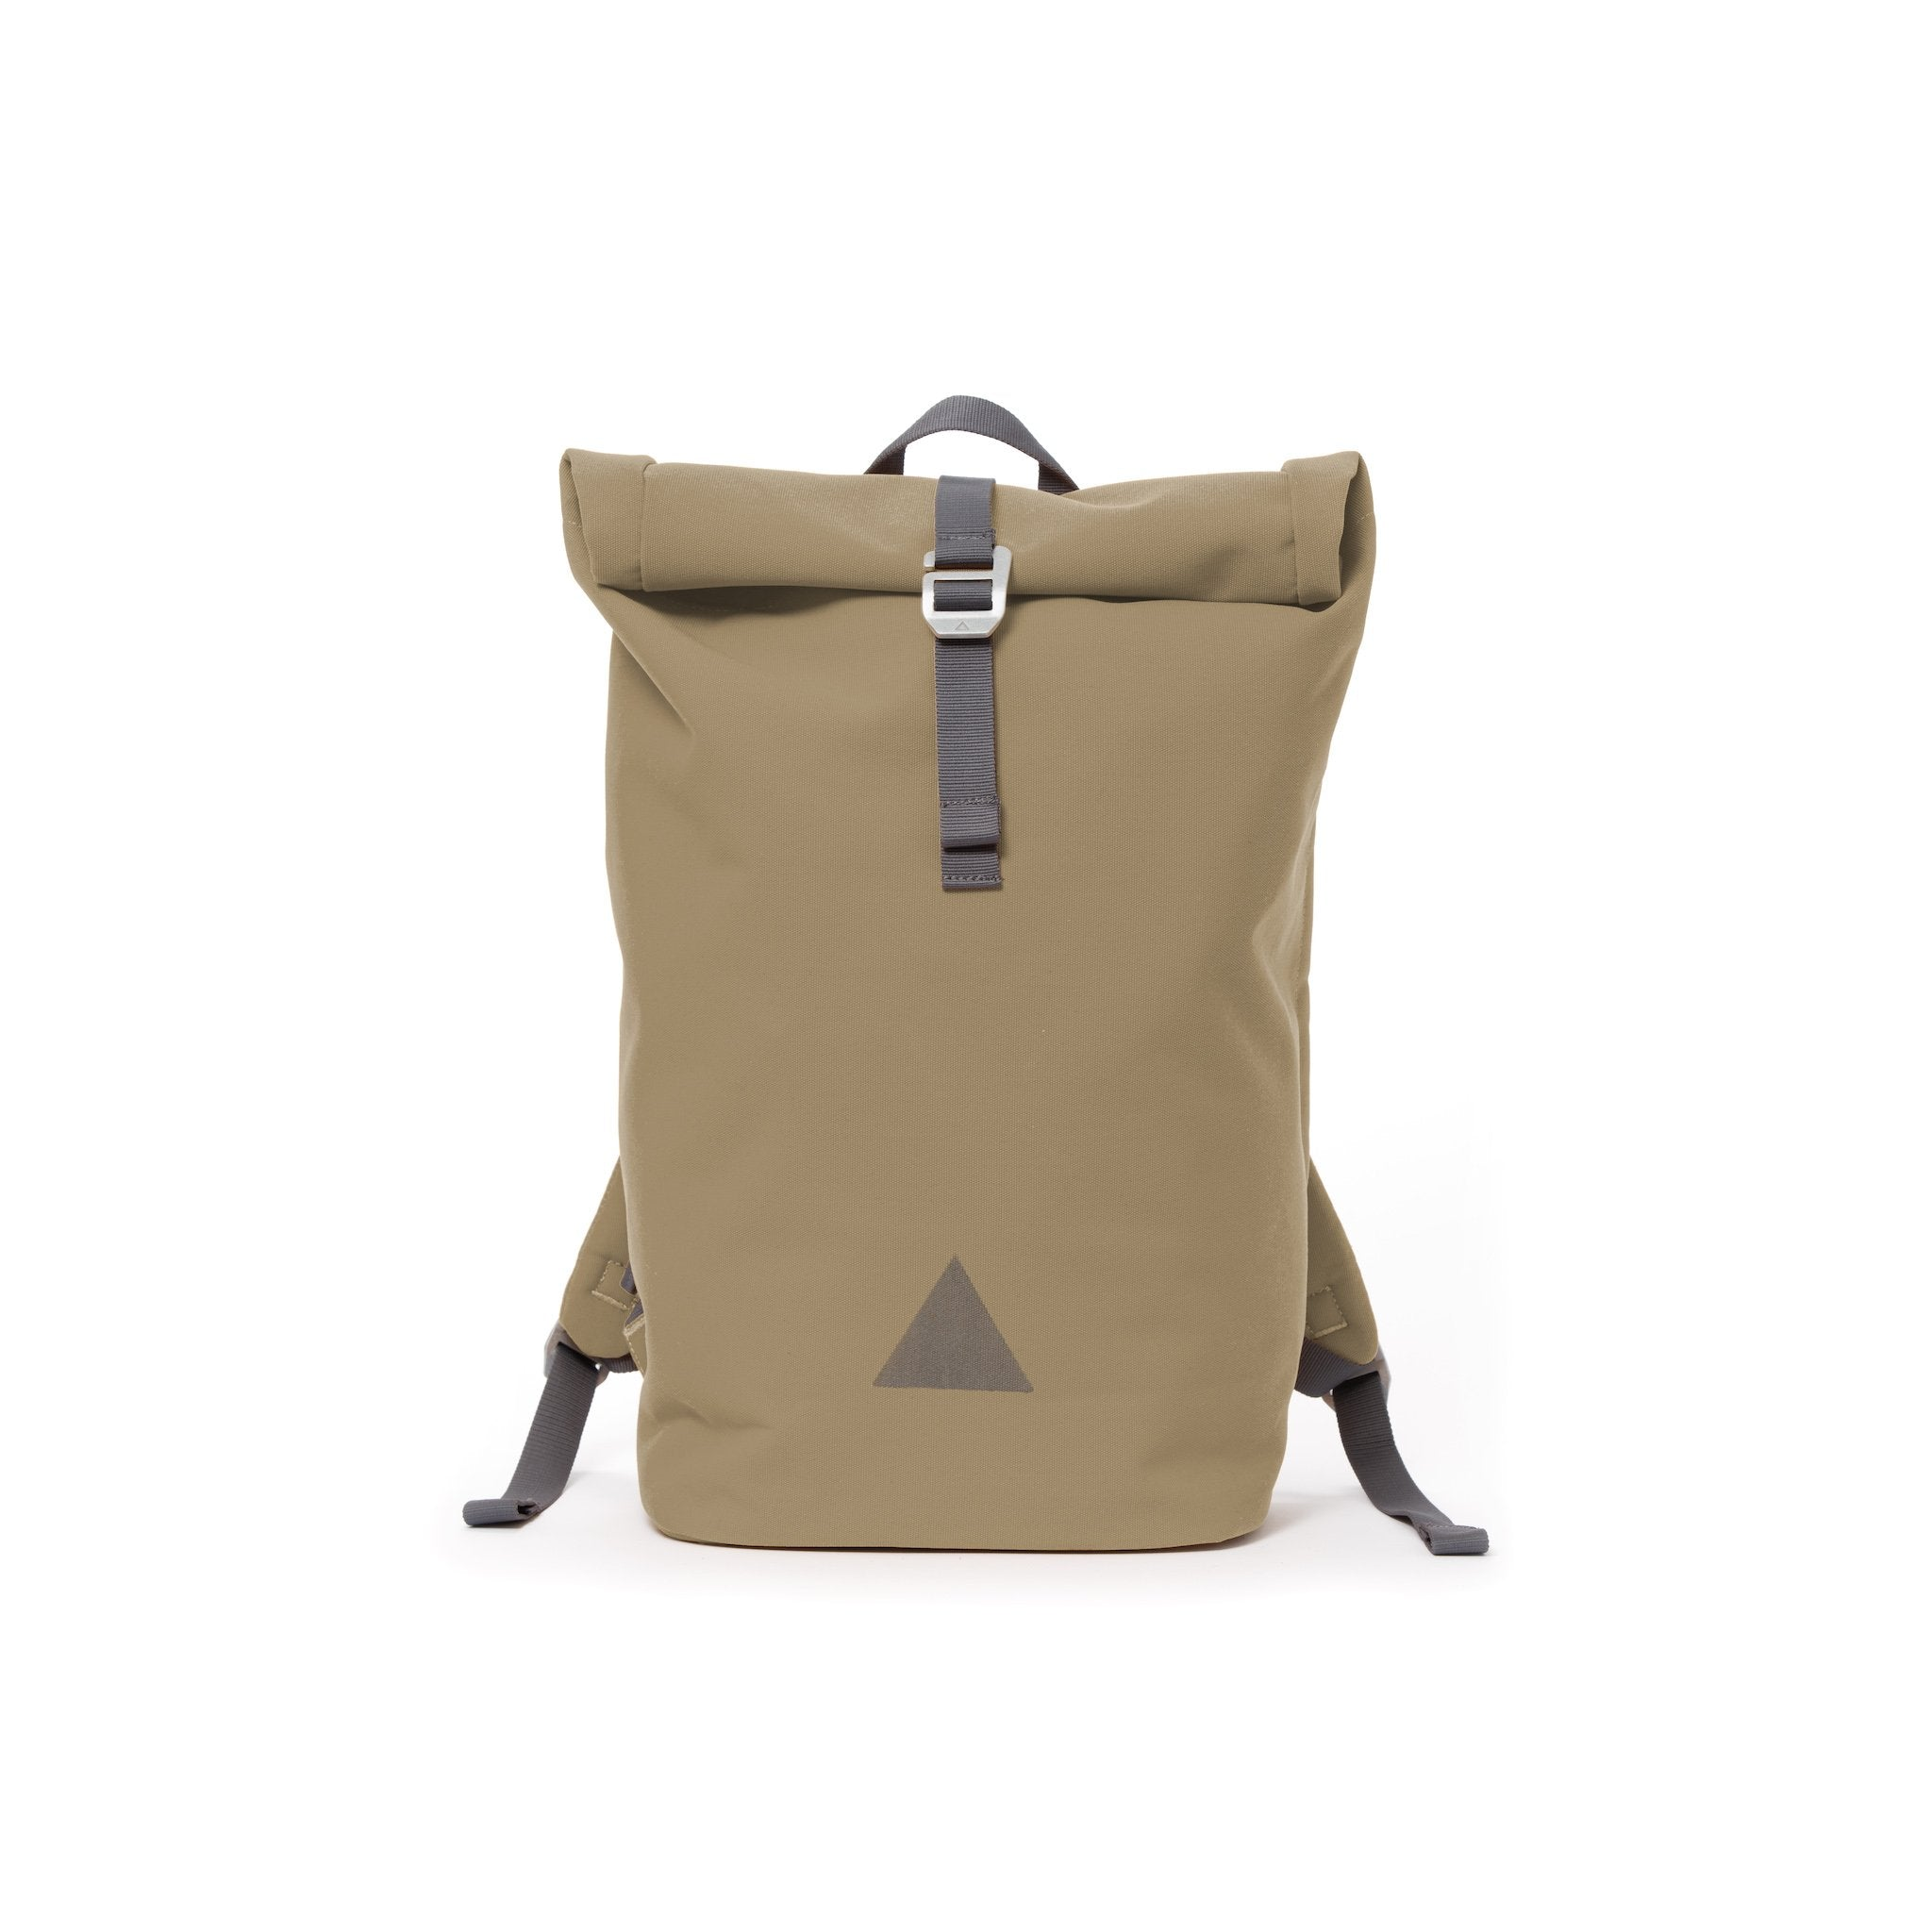 Khaki recycled canvas men's rolltop backpack with triangle logo.